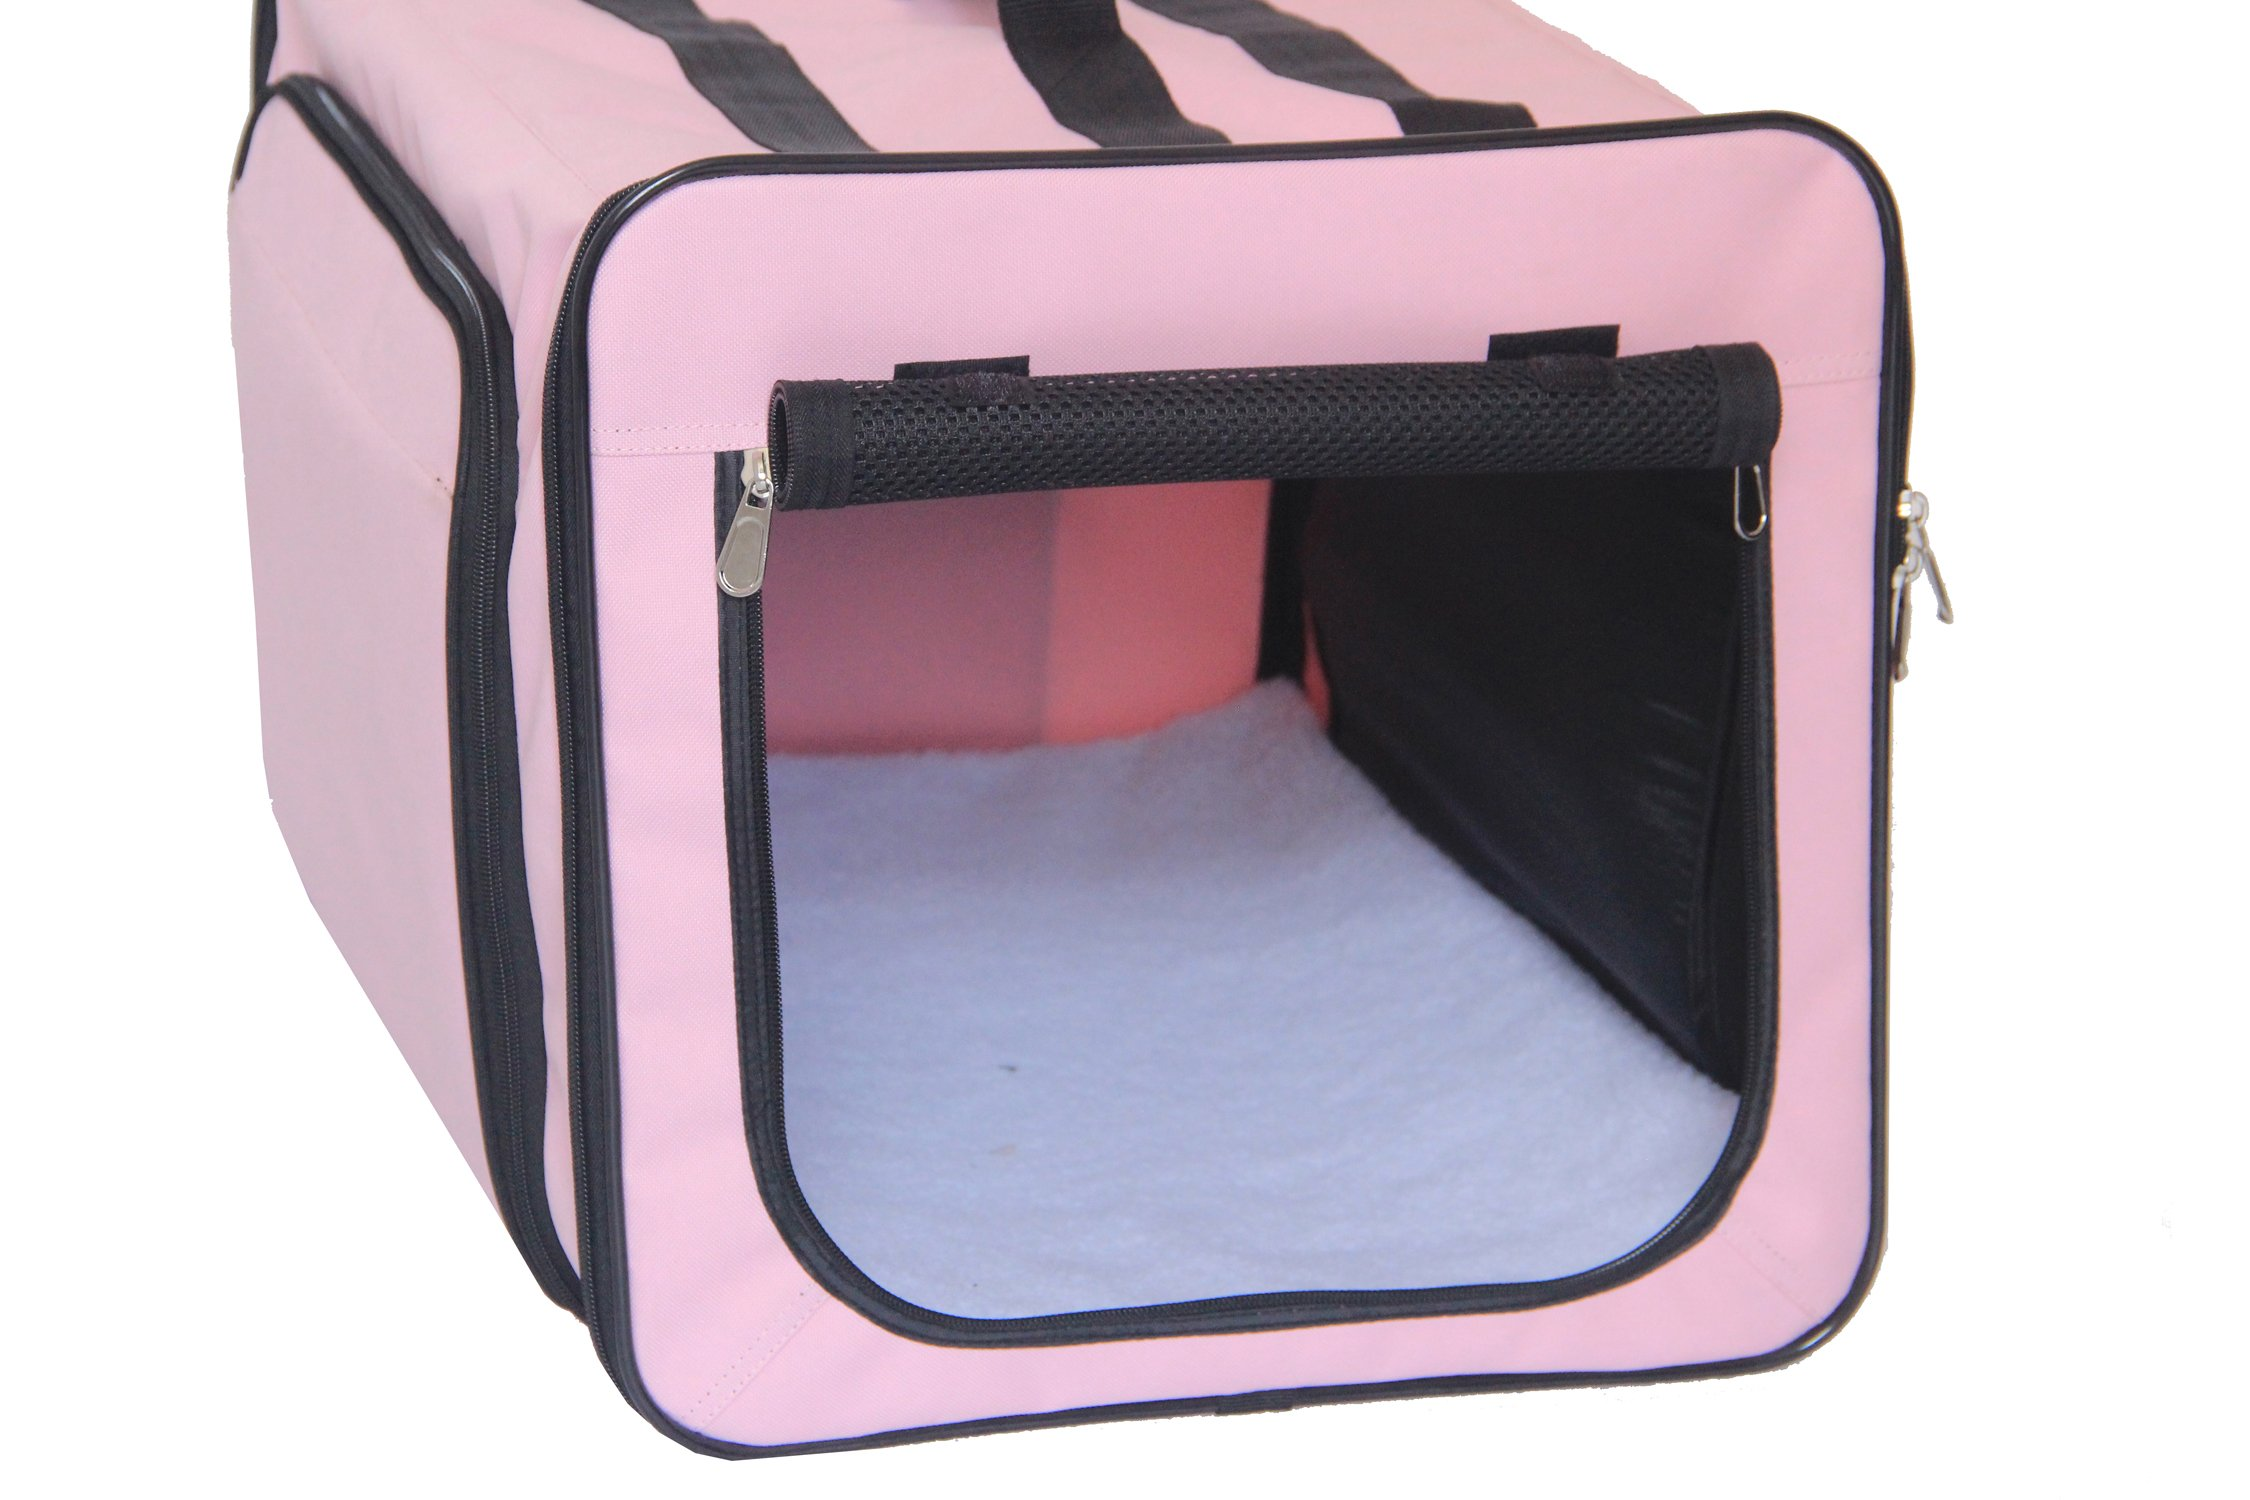 Pet Life 'Capacious' Dual-Sided Expandable Spacious Wire Folding Collapsible Lightweight Pet Dog Crate Carrier House, X-Large, Pink by Pet Life (Image #4)